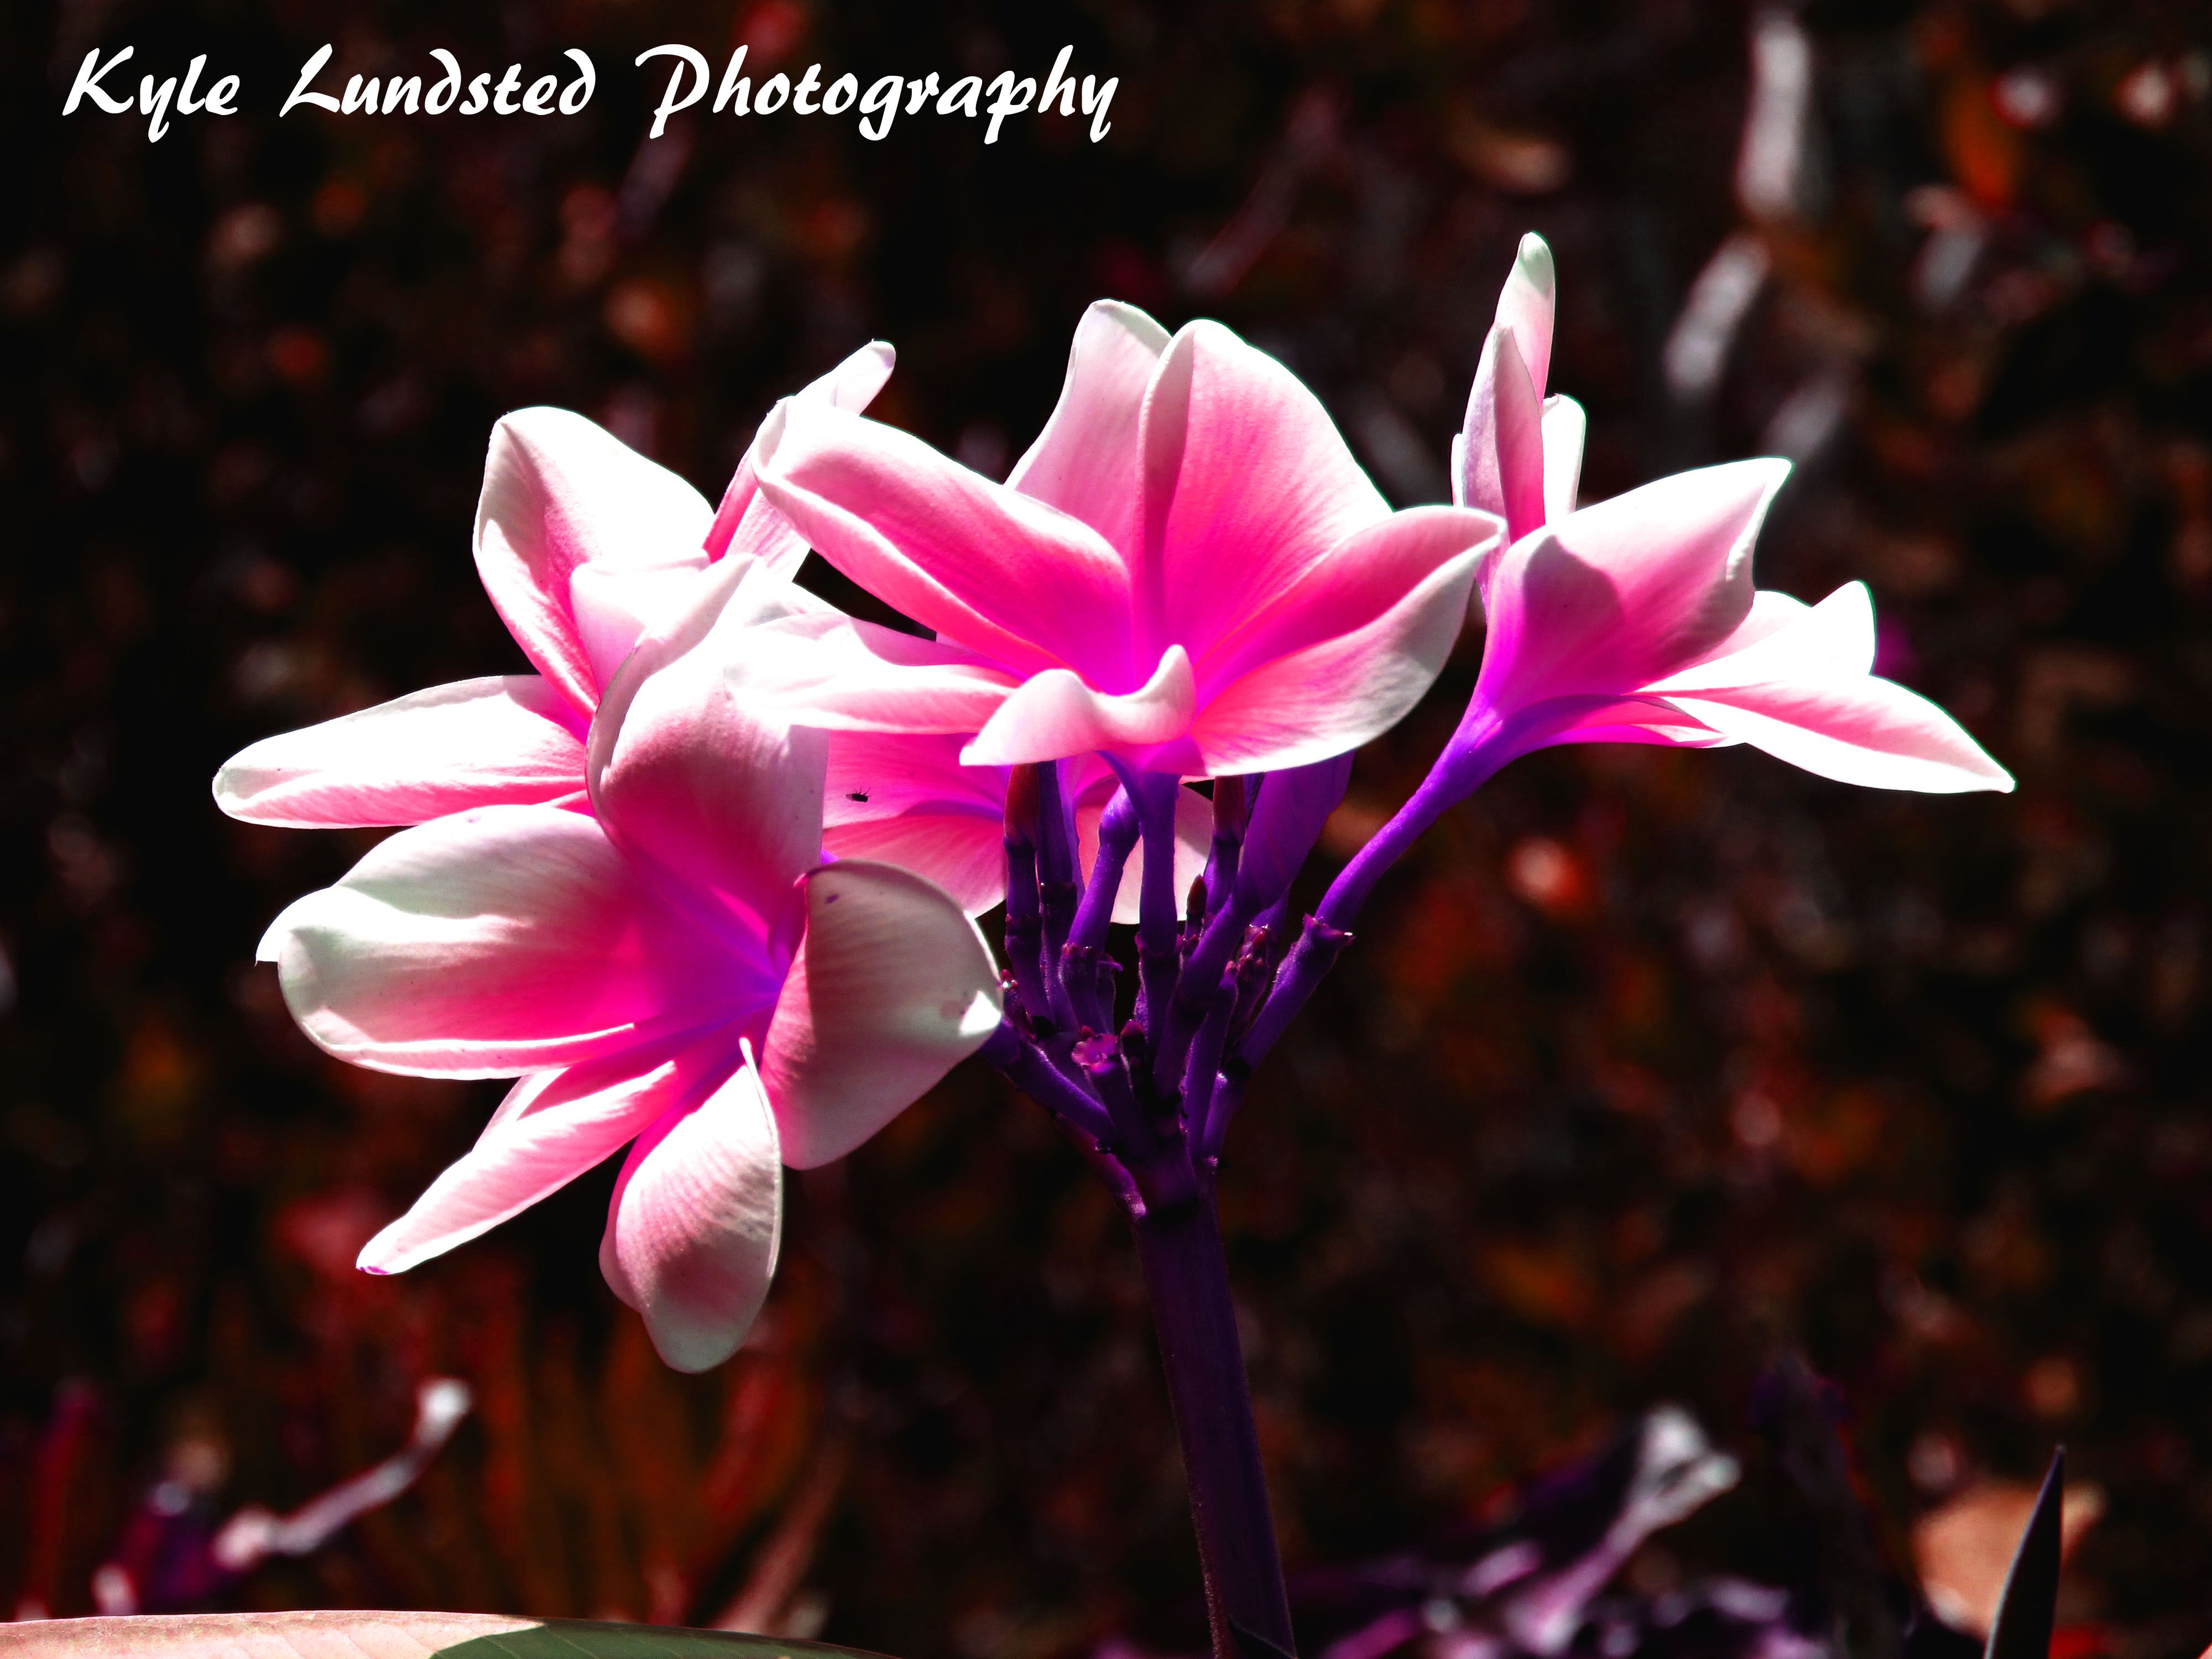 The most beautiful flower I have ever seen at Naples Zoo taken by a Canon PowerShot SX510 HS.